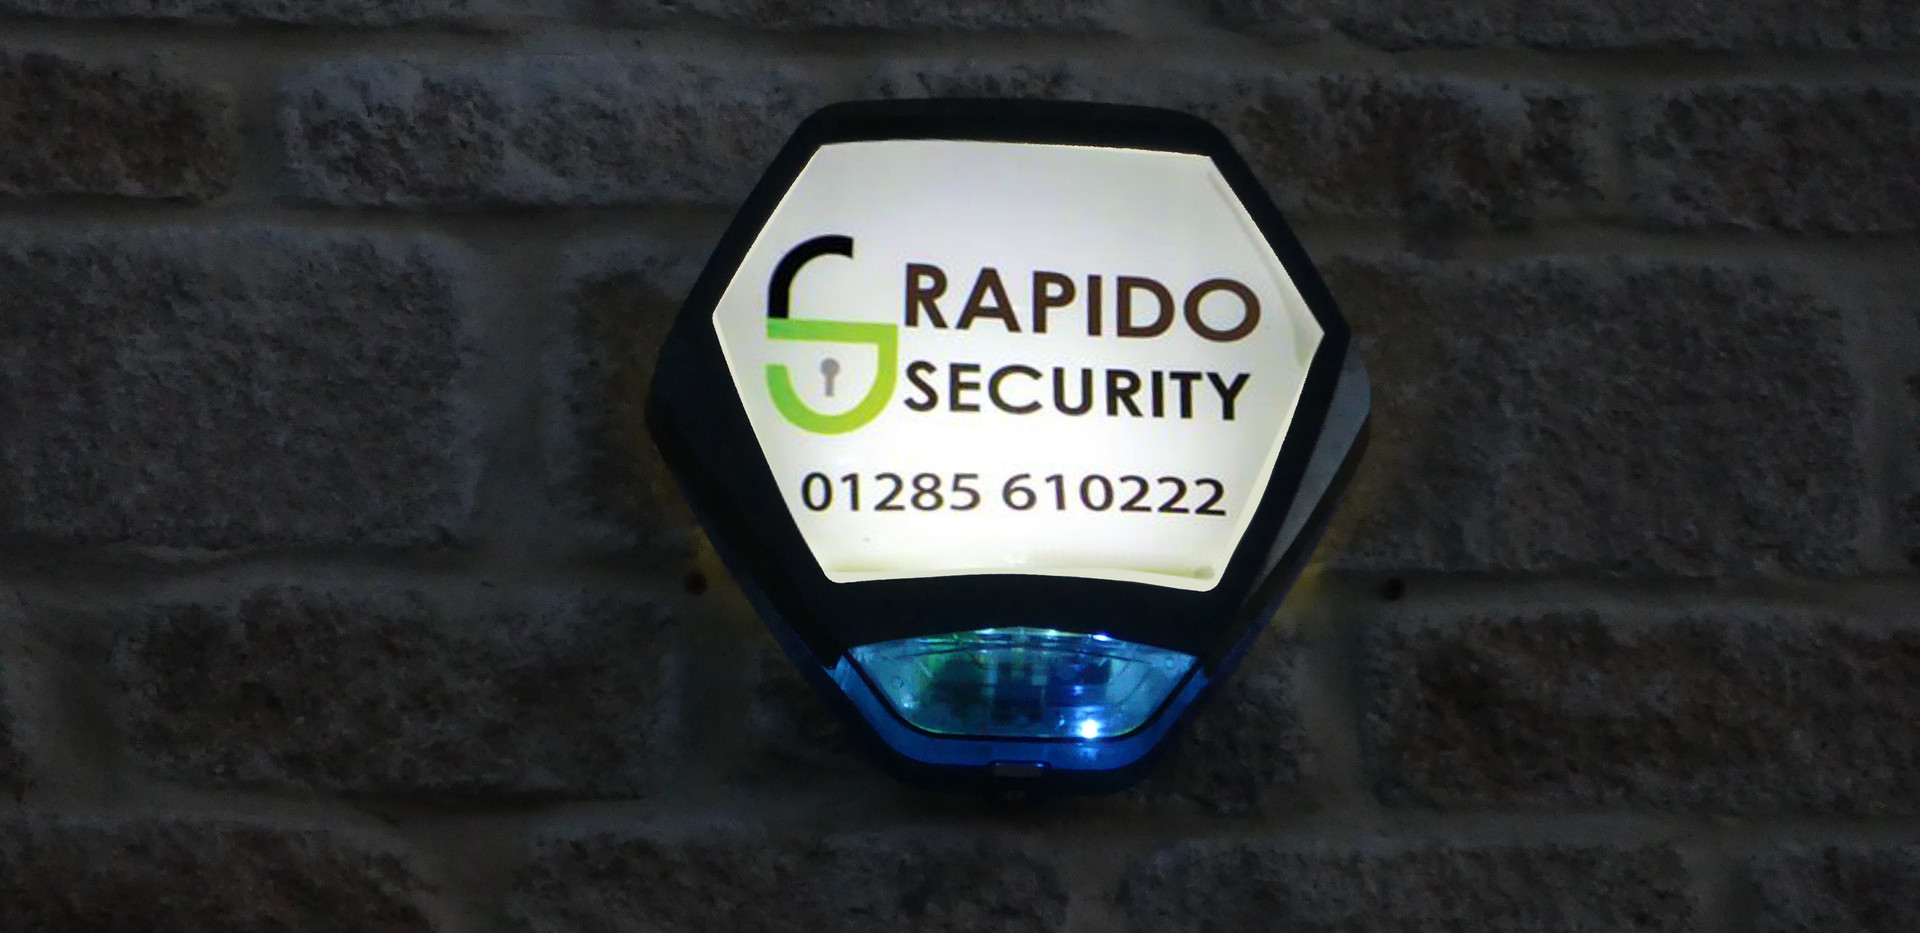 RAPIDO SECURITY ALARM INSTALL.jpg